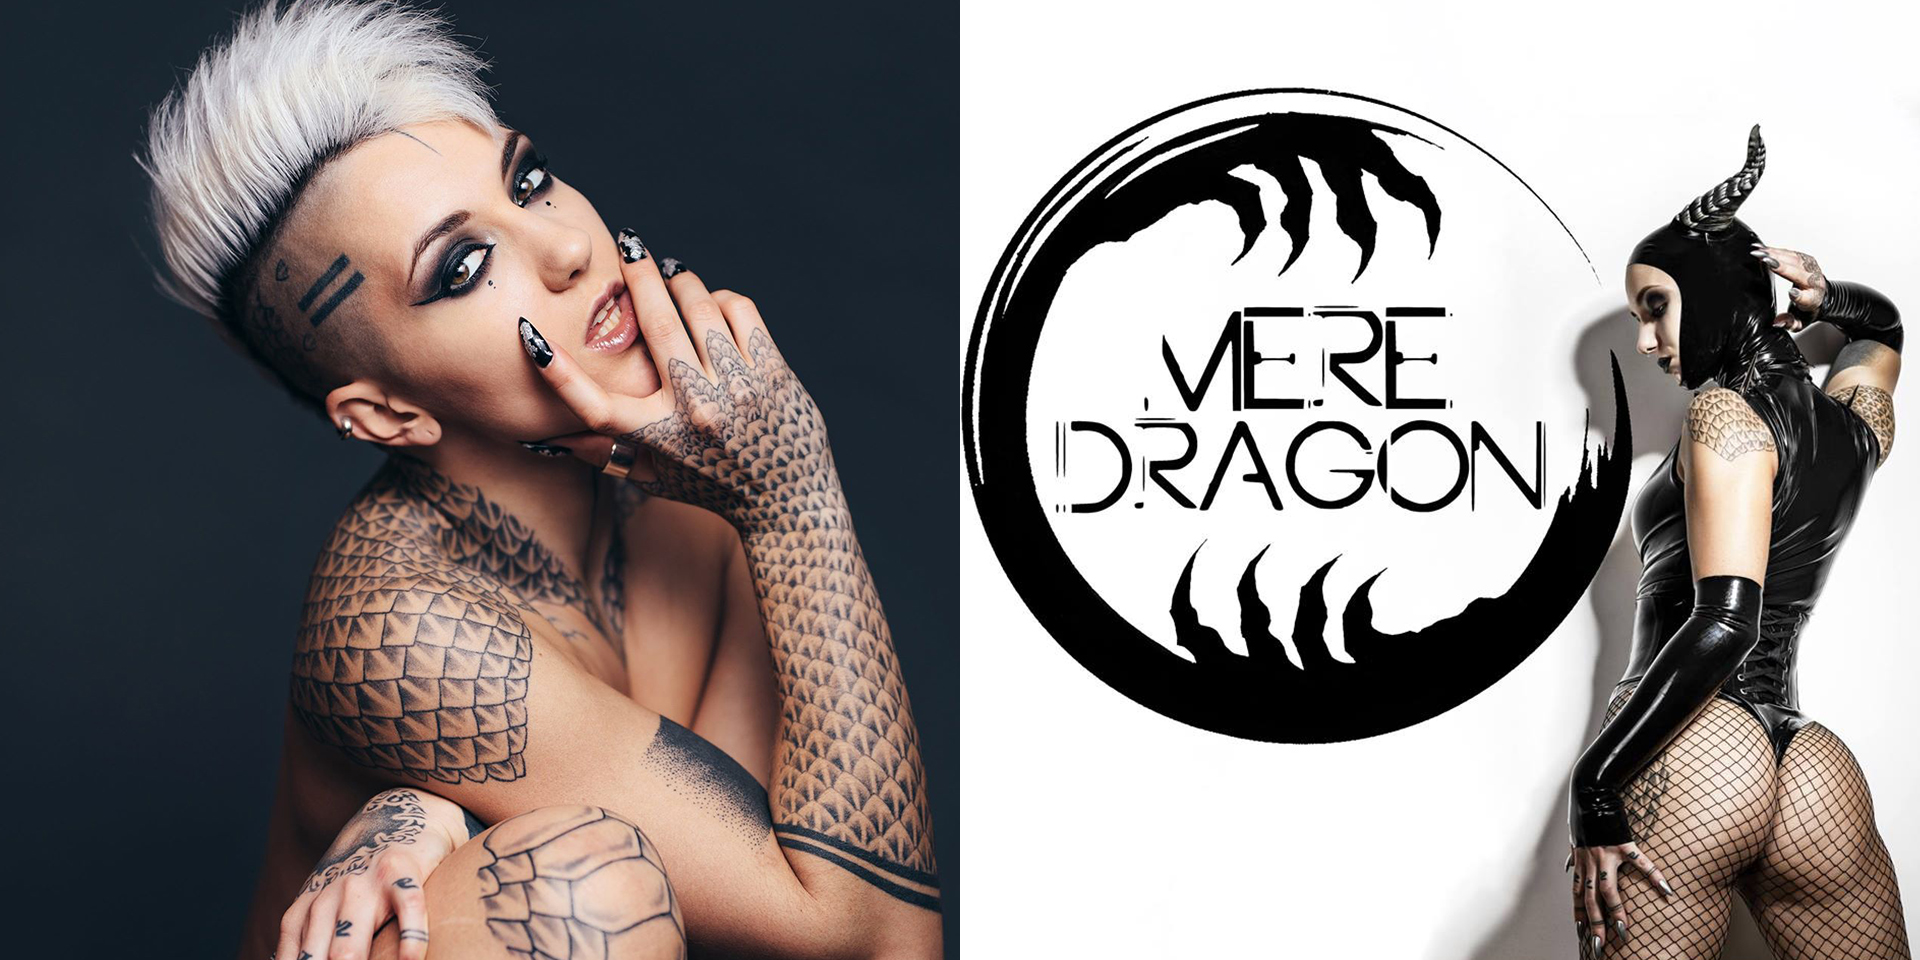 epinal-tattoo-shw-2019-page-programme-mere-dragon